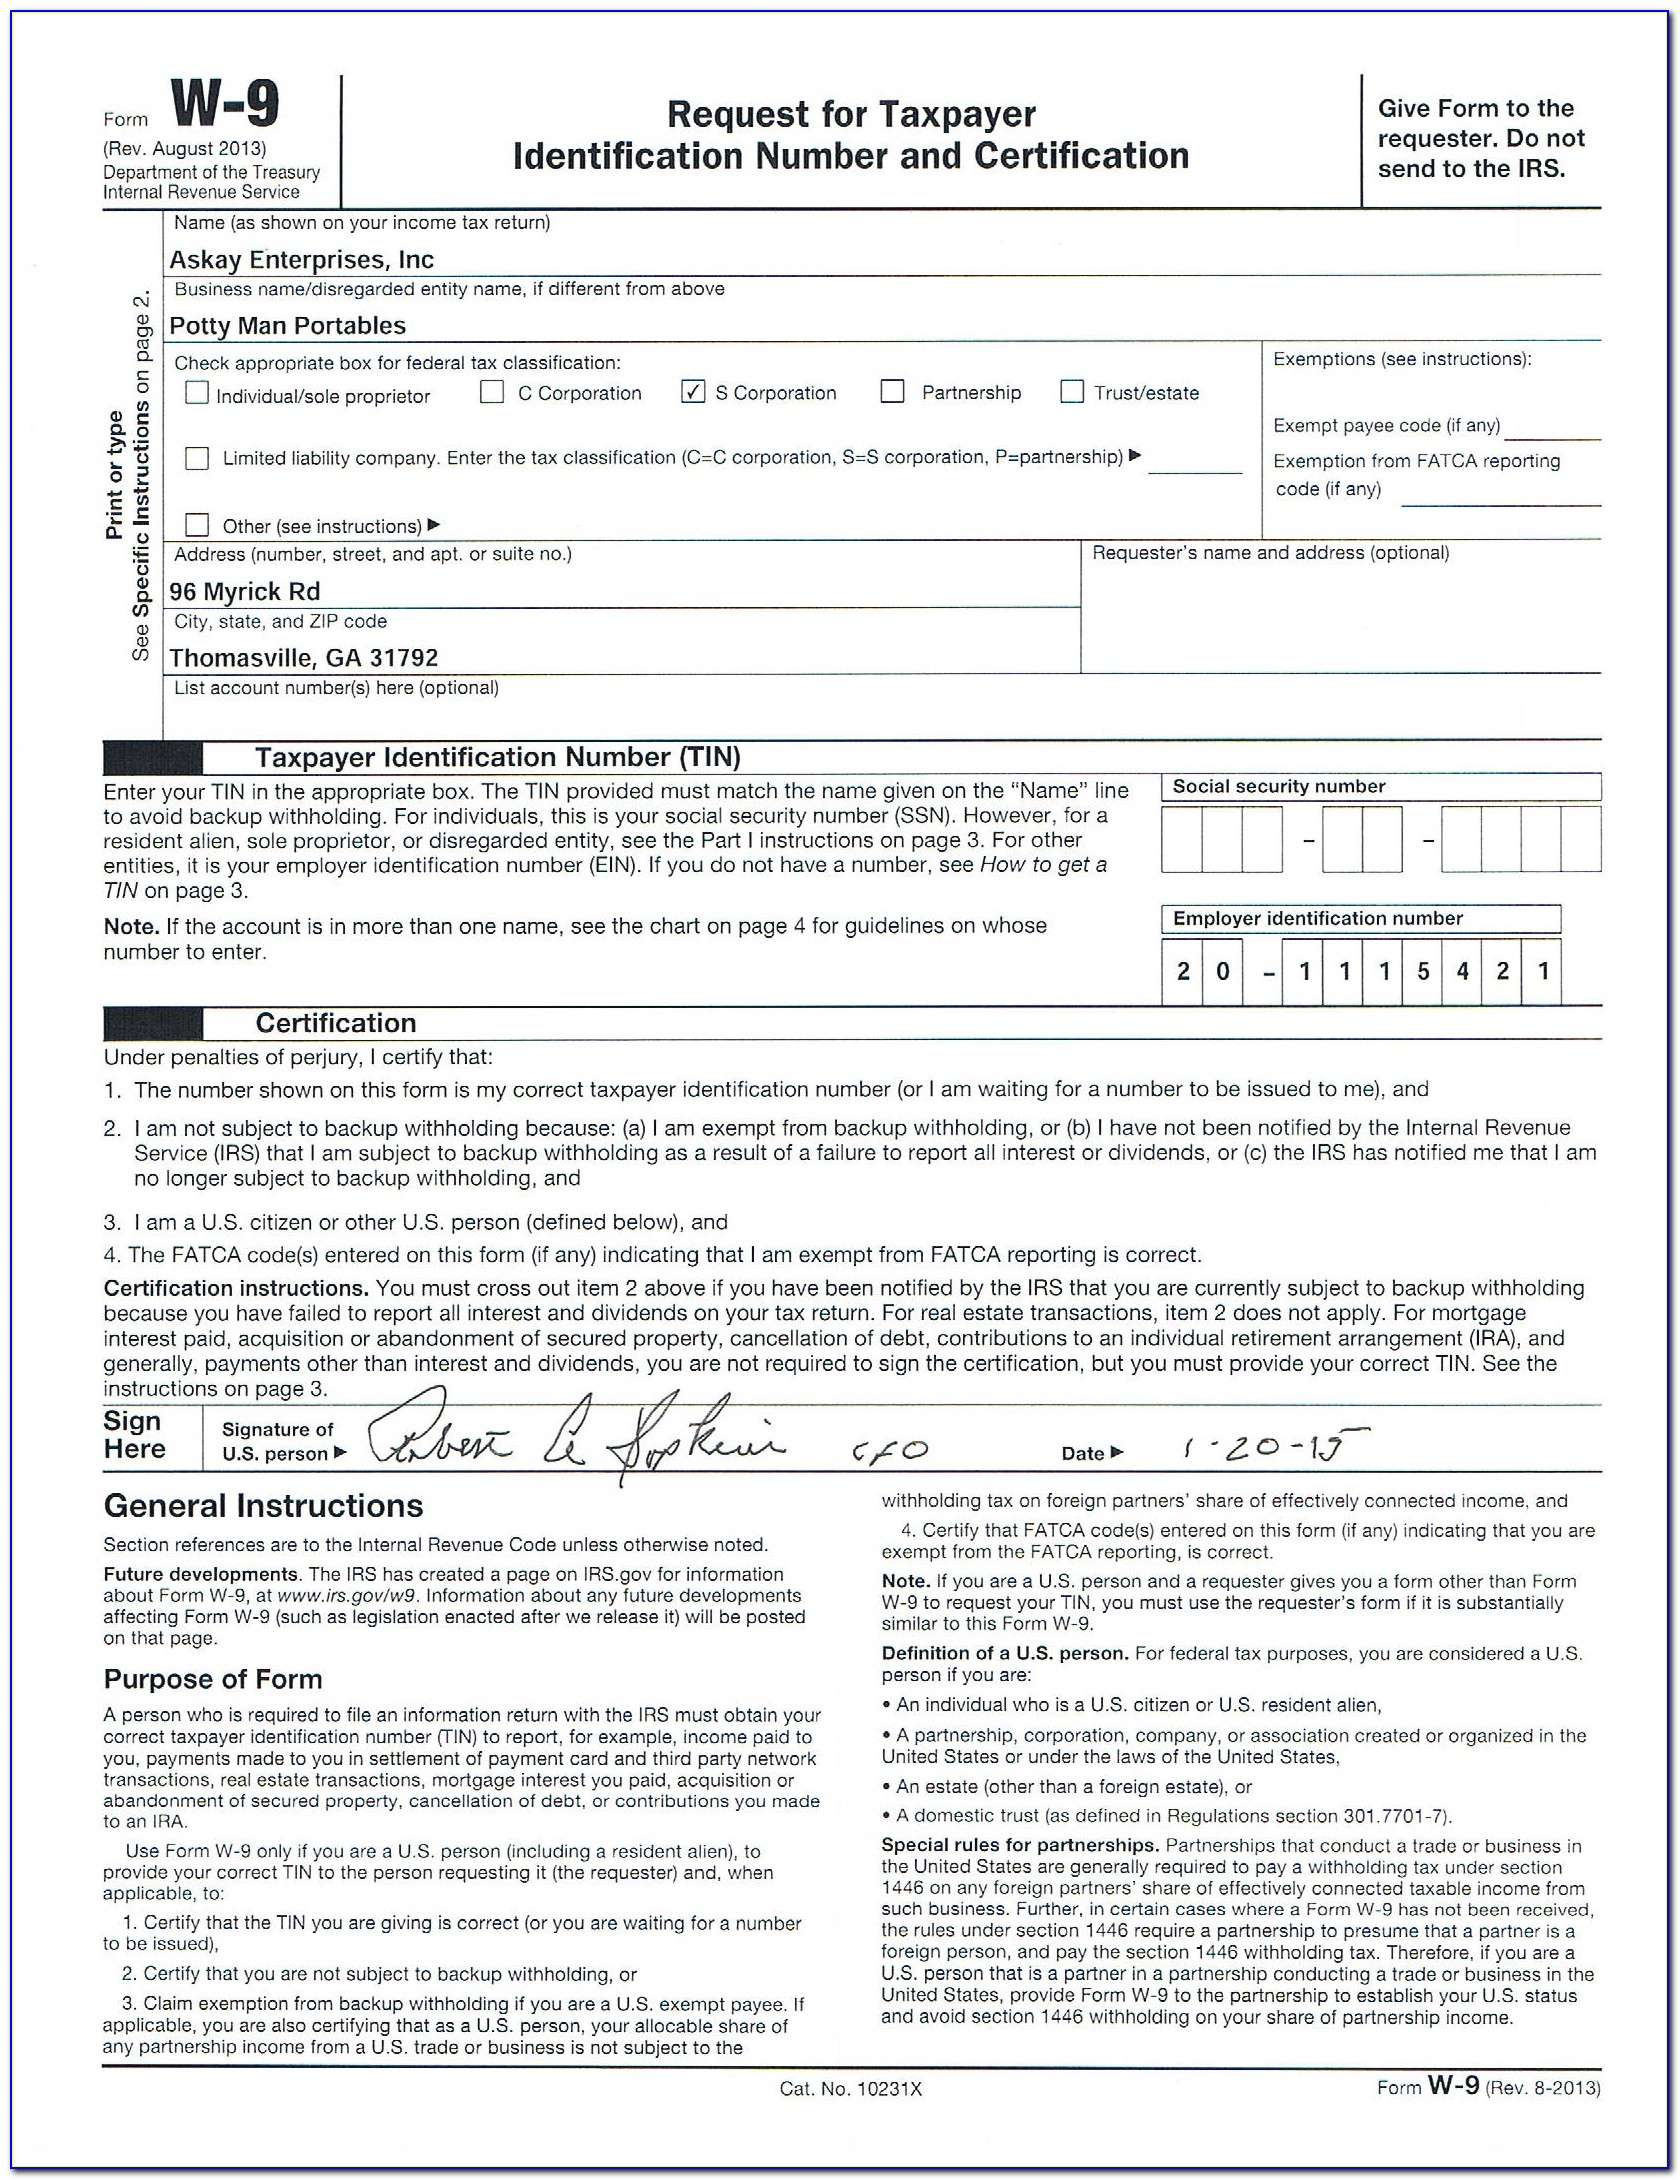 W9 Free Printable Form 2016 | Vincegray2014 pertaining to Print W 9 Form Free